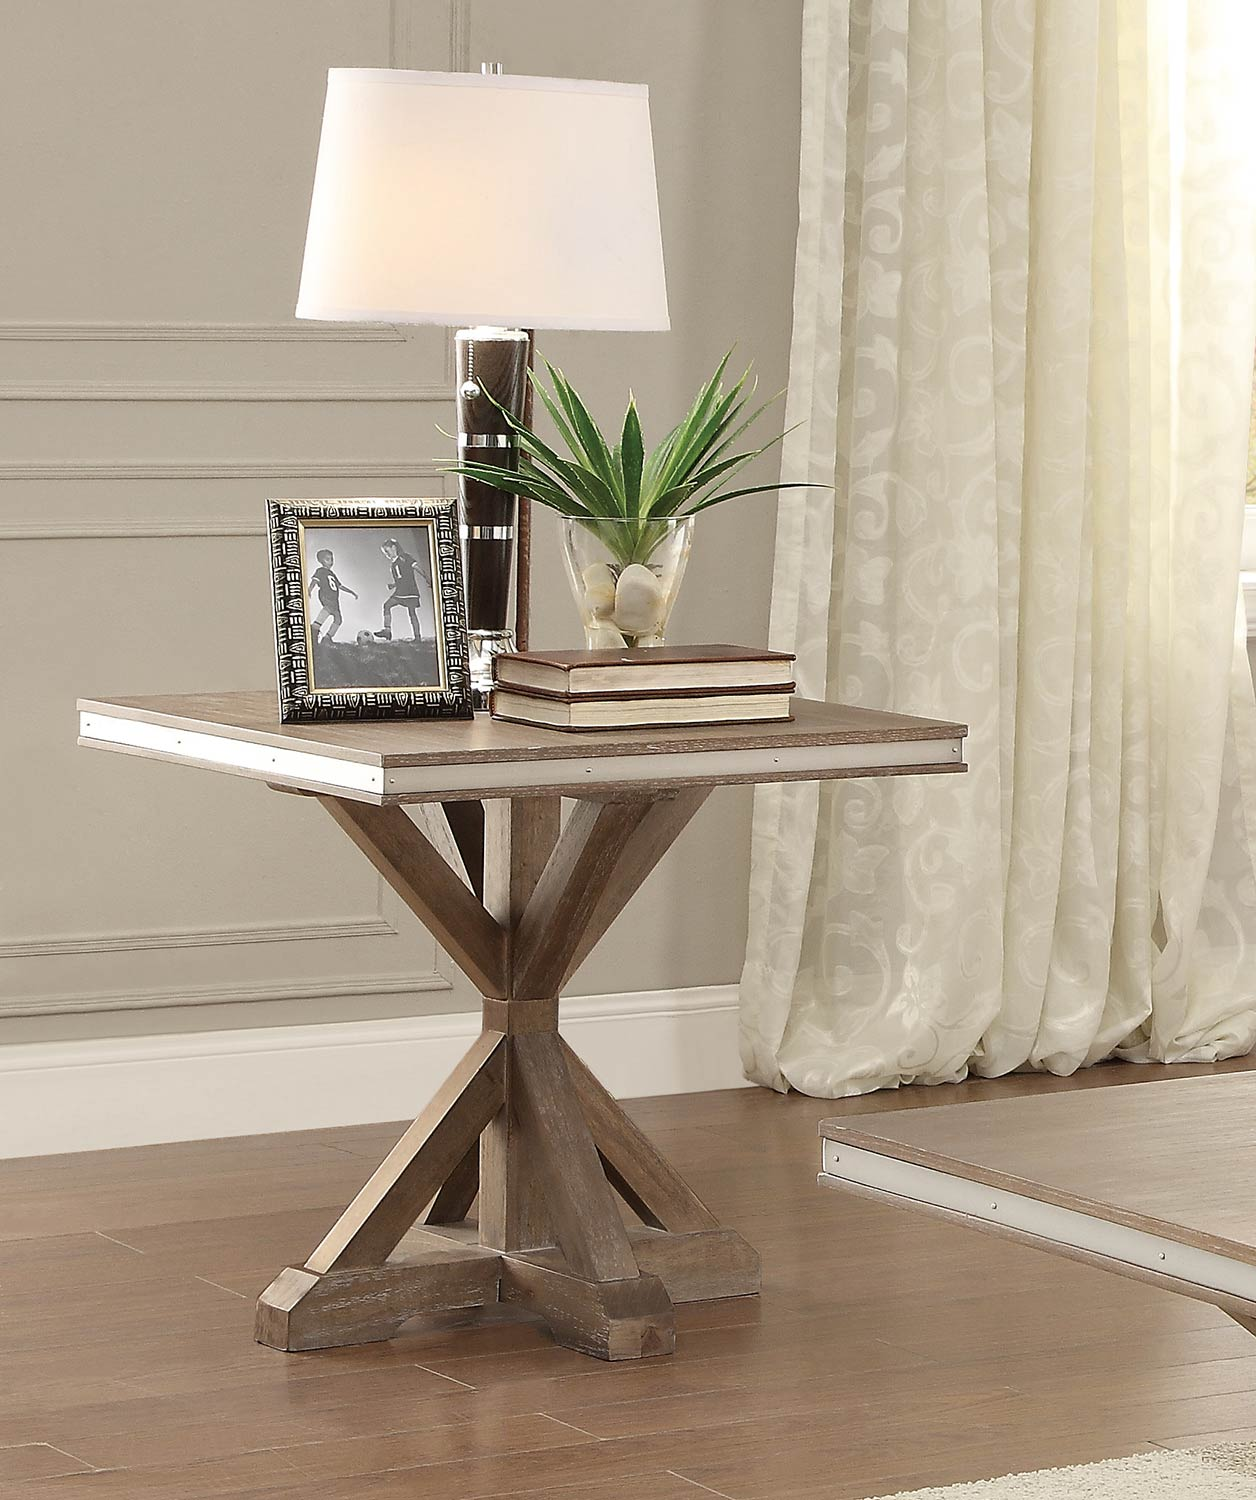 Homelegance Beaugrand End Table   Light Brown With Stainless Steel Apron  Banding